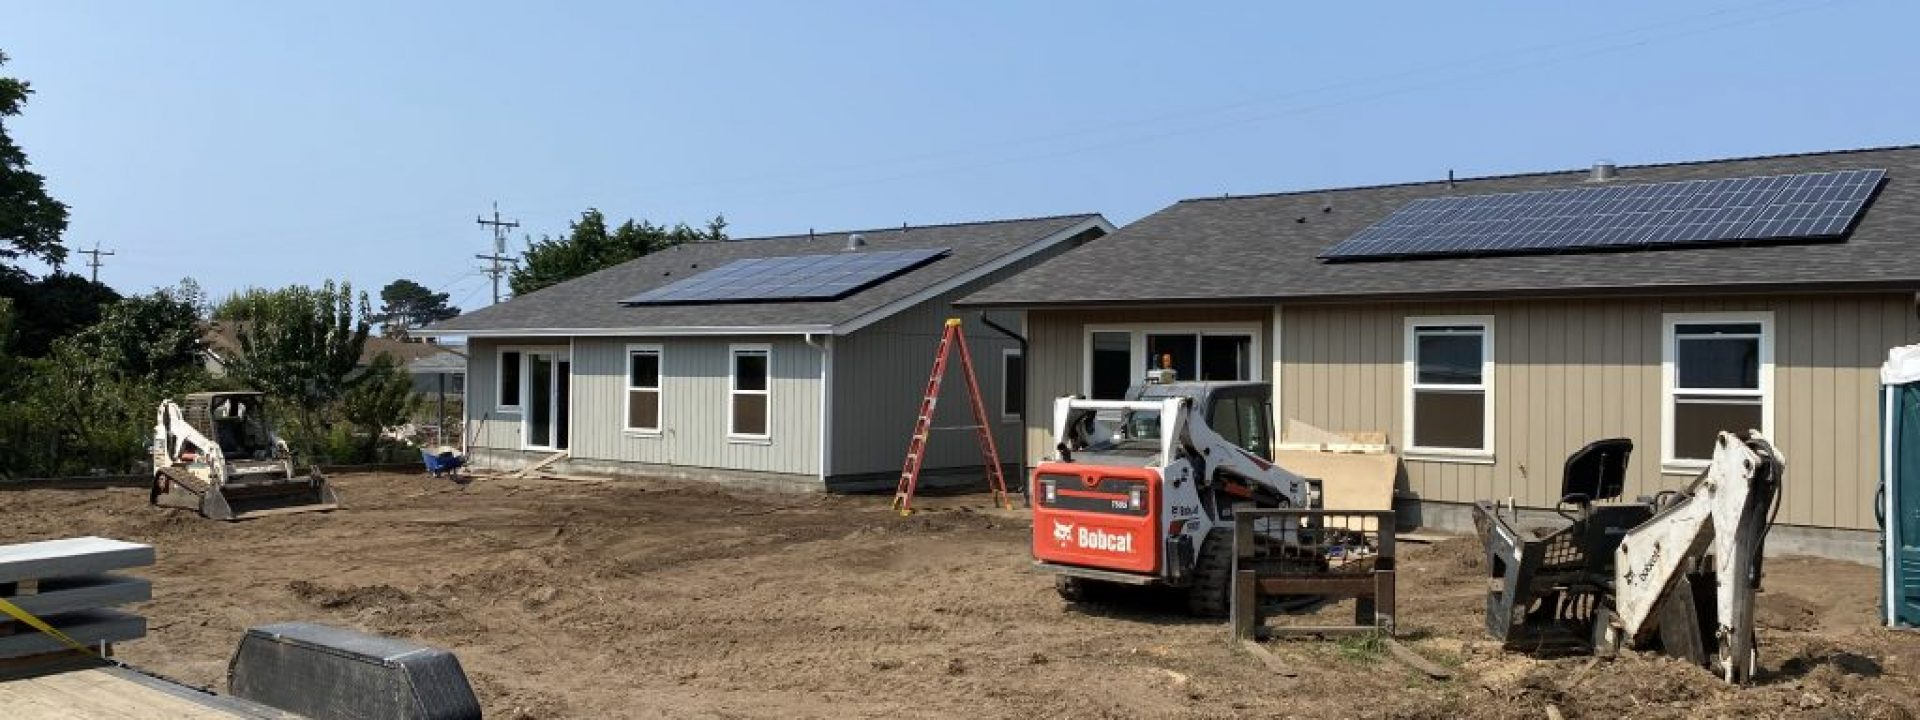 humbolt solar panel and electric services